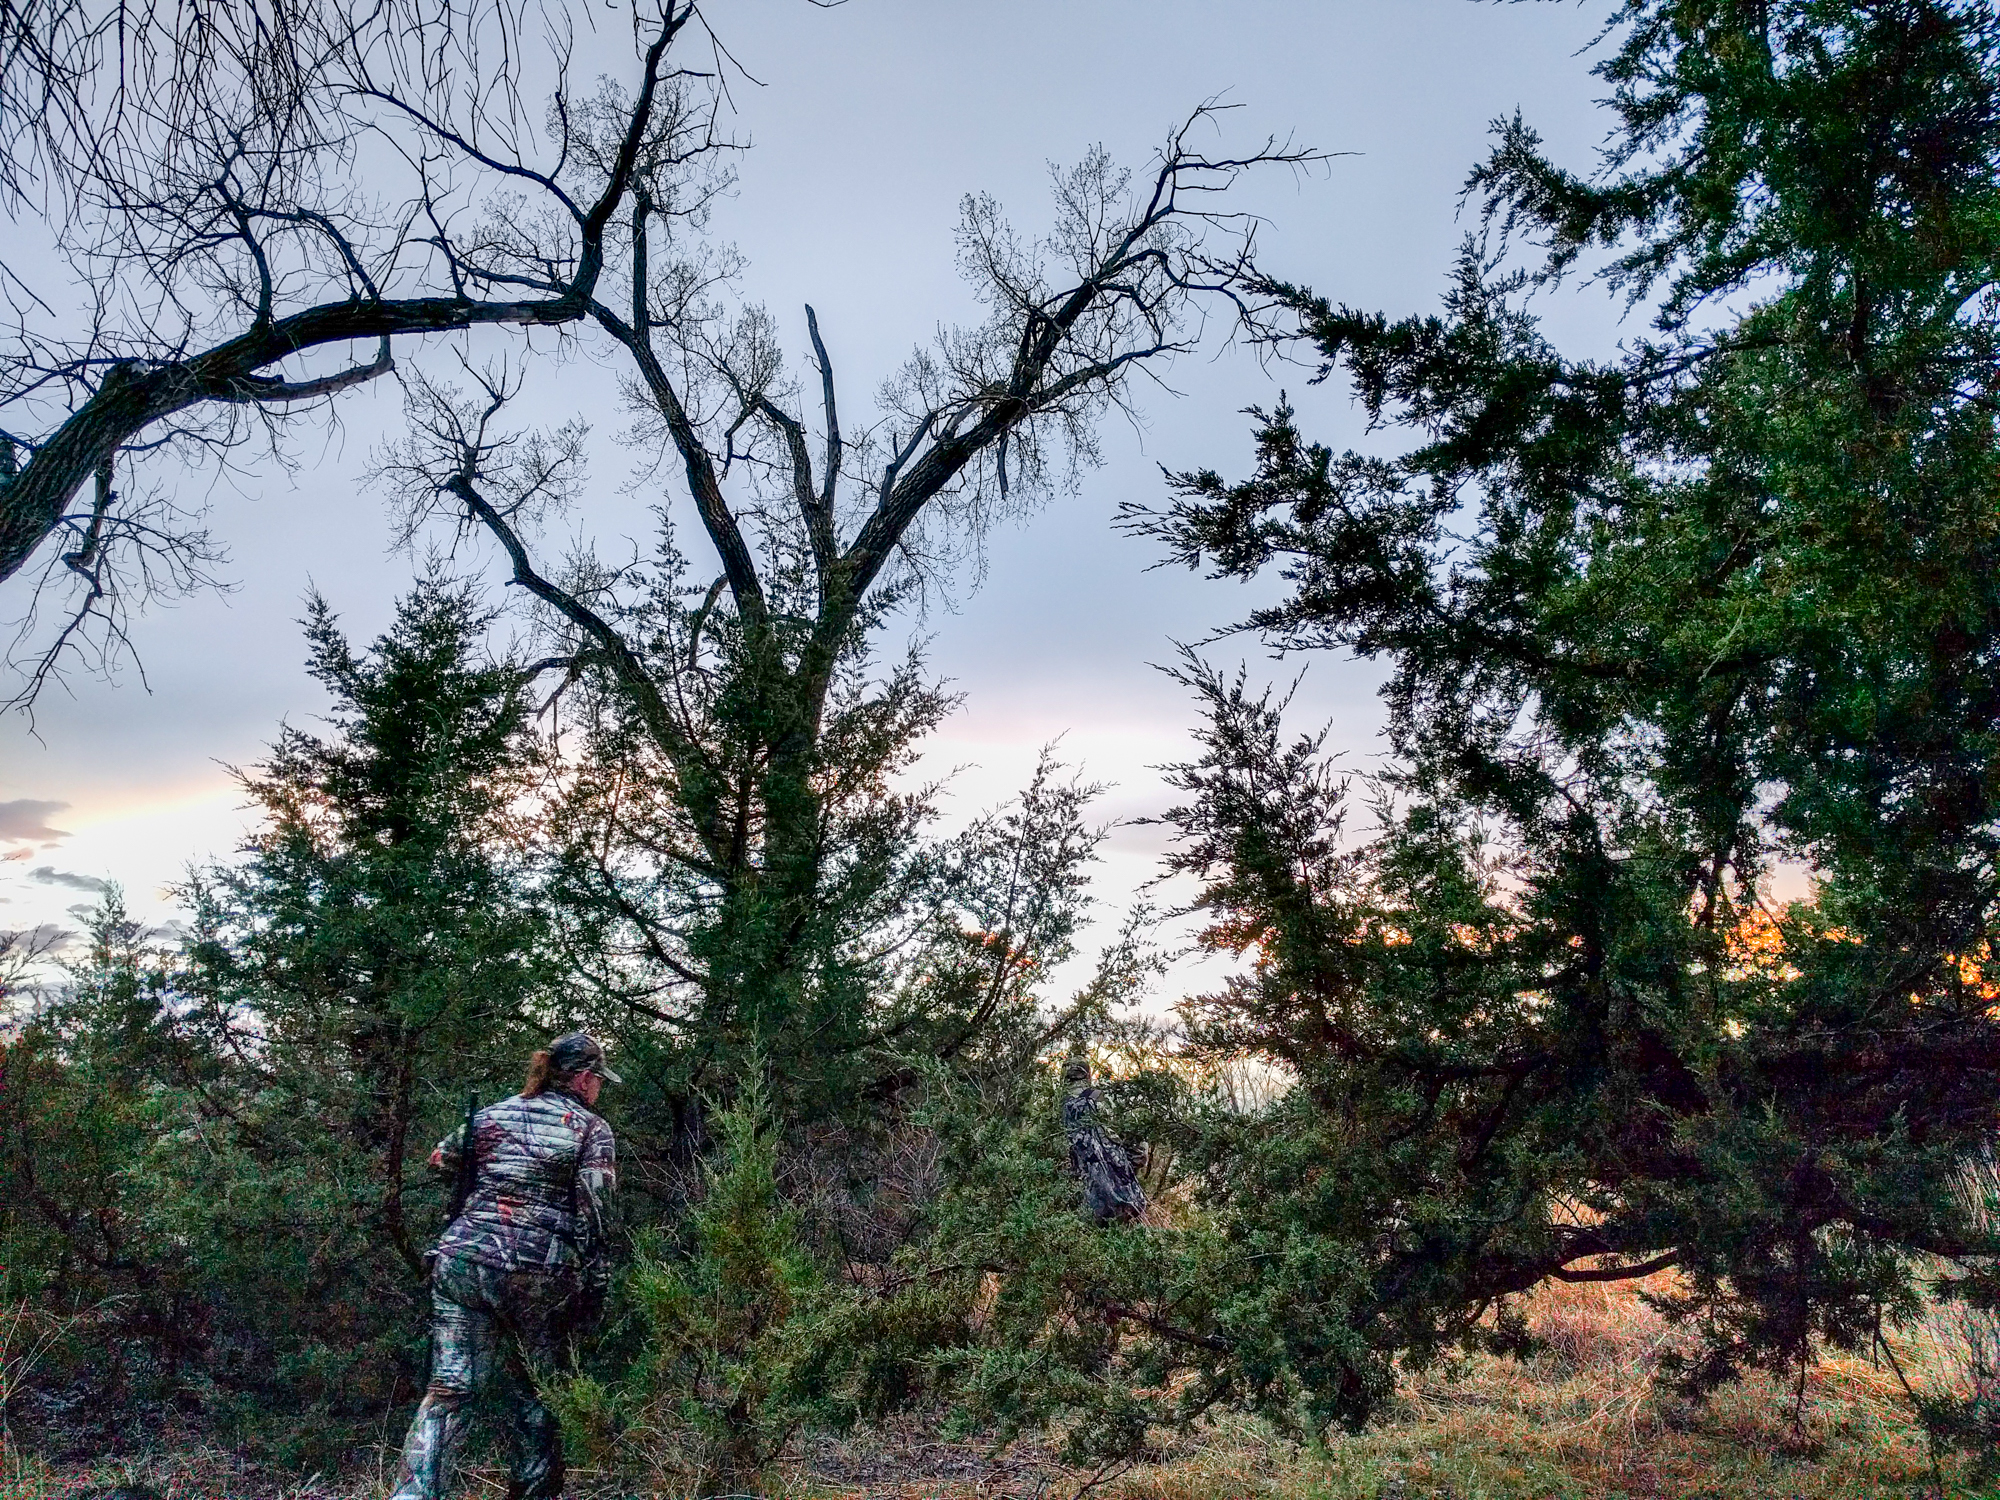 Spring is right around the corner and that means turkey season. Do you have the gear you need? Here's a checklist of items that will make getting your gobbler easier and more enjoyable.